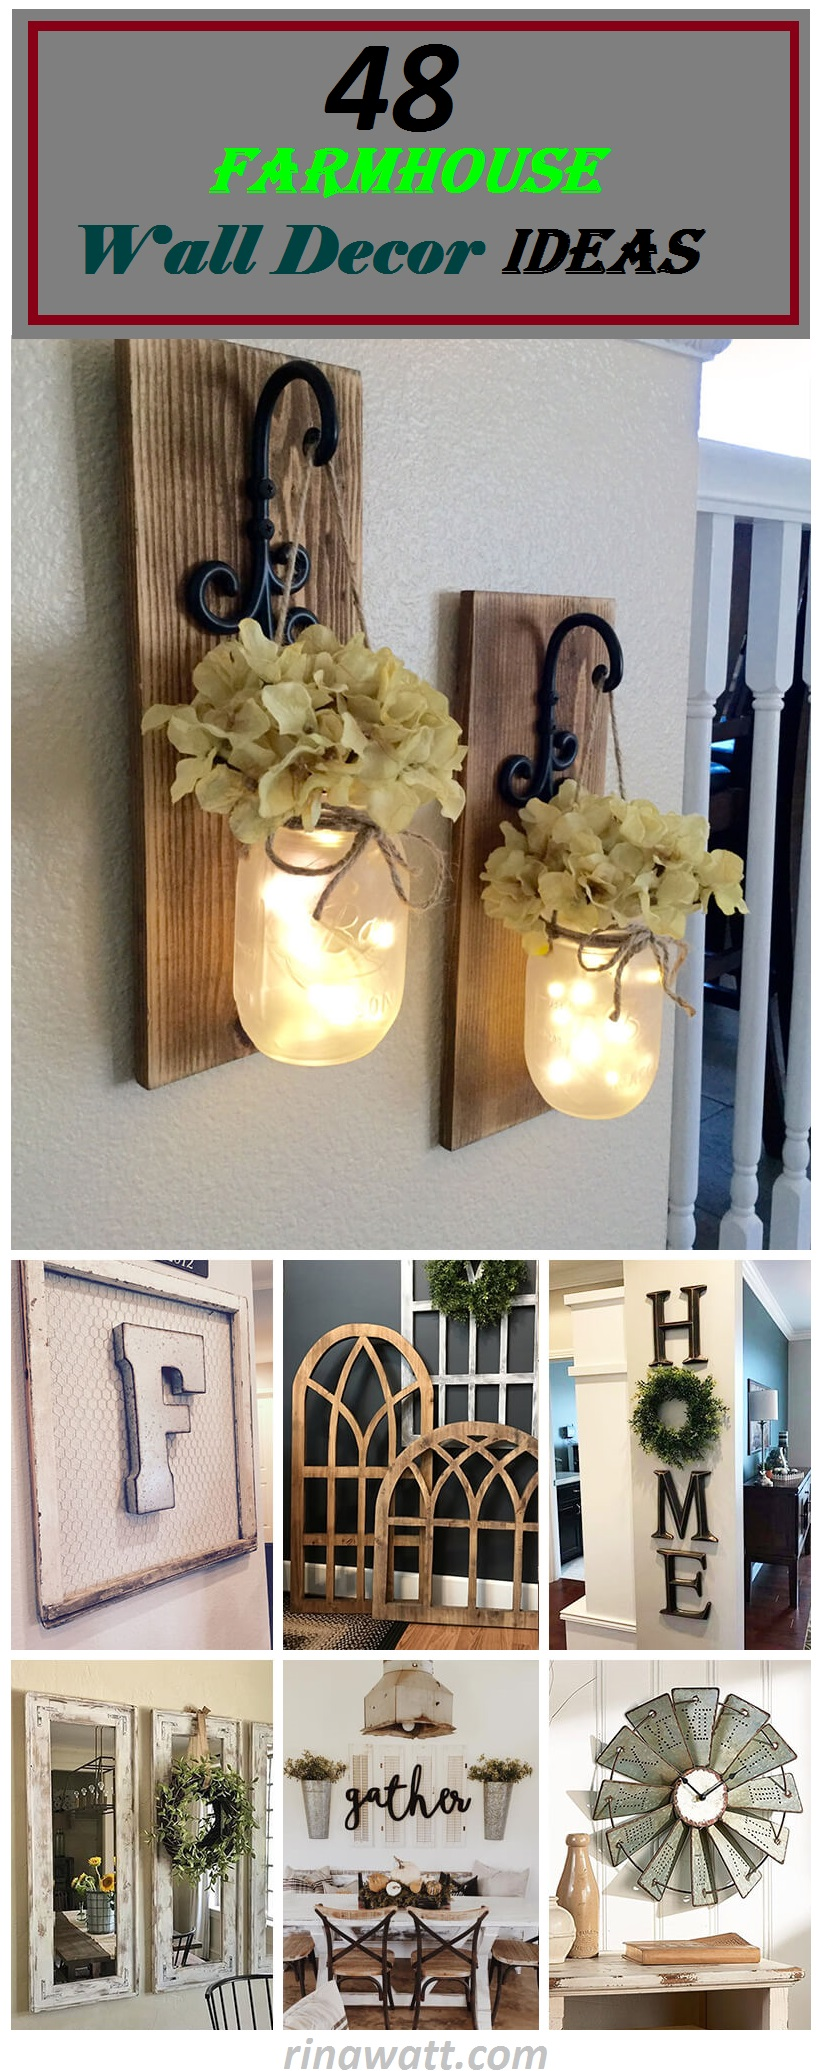 48 Charming Farmhouse Wall Decor Ideas To Add Some Rustic Flair To Your Blank Walls Rina Watt Blogger Home Decor Diy And Recipes